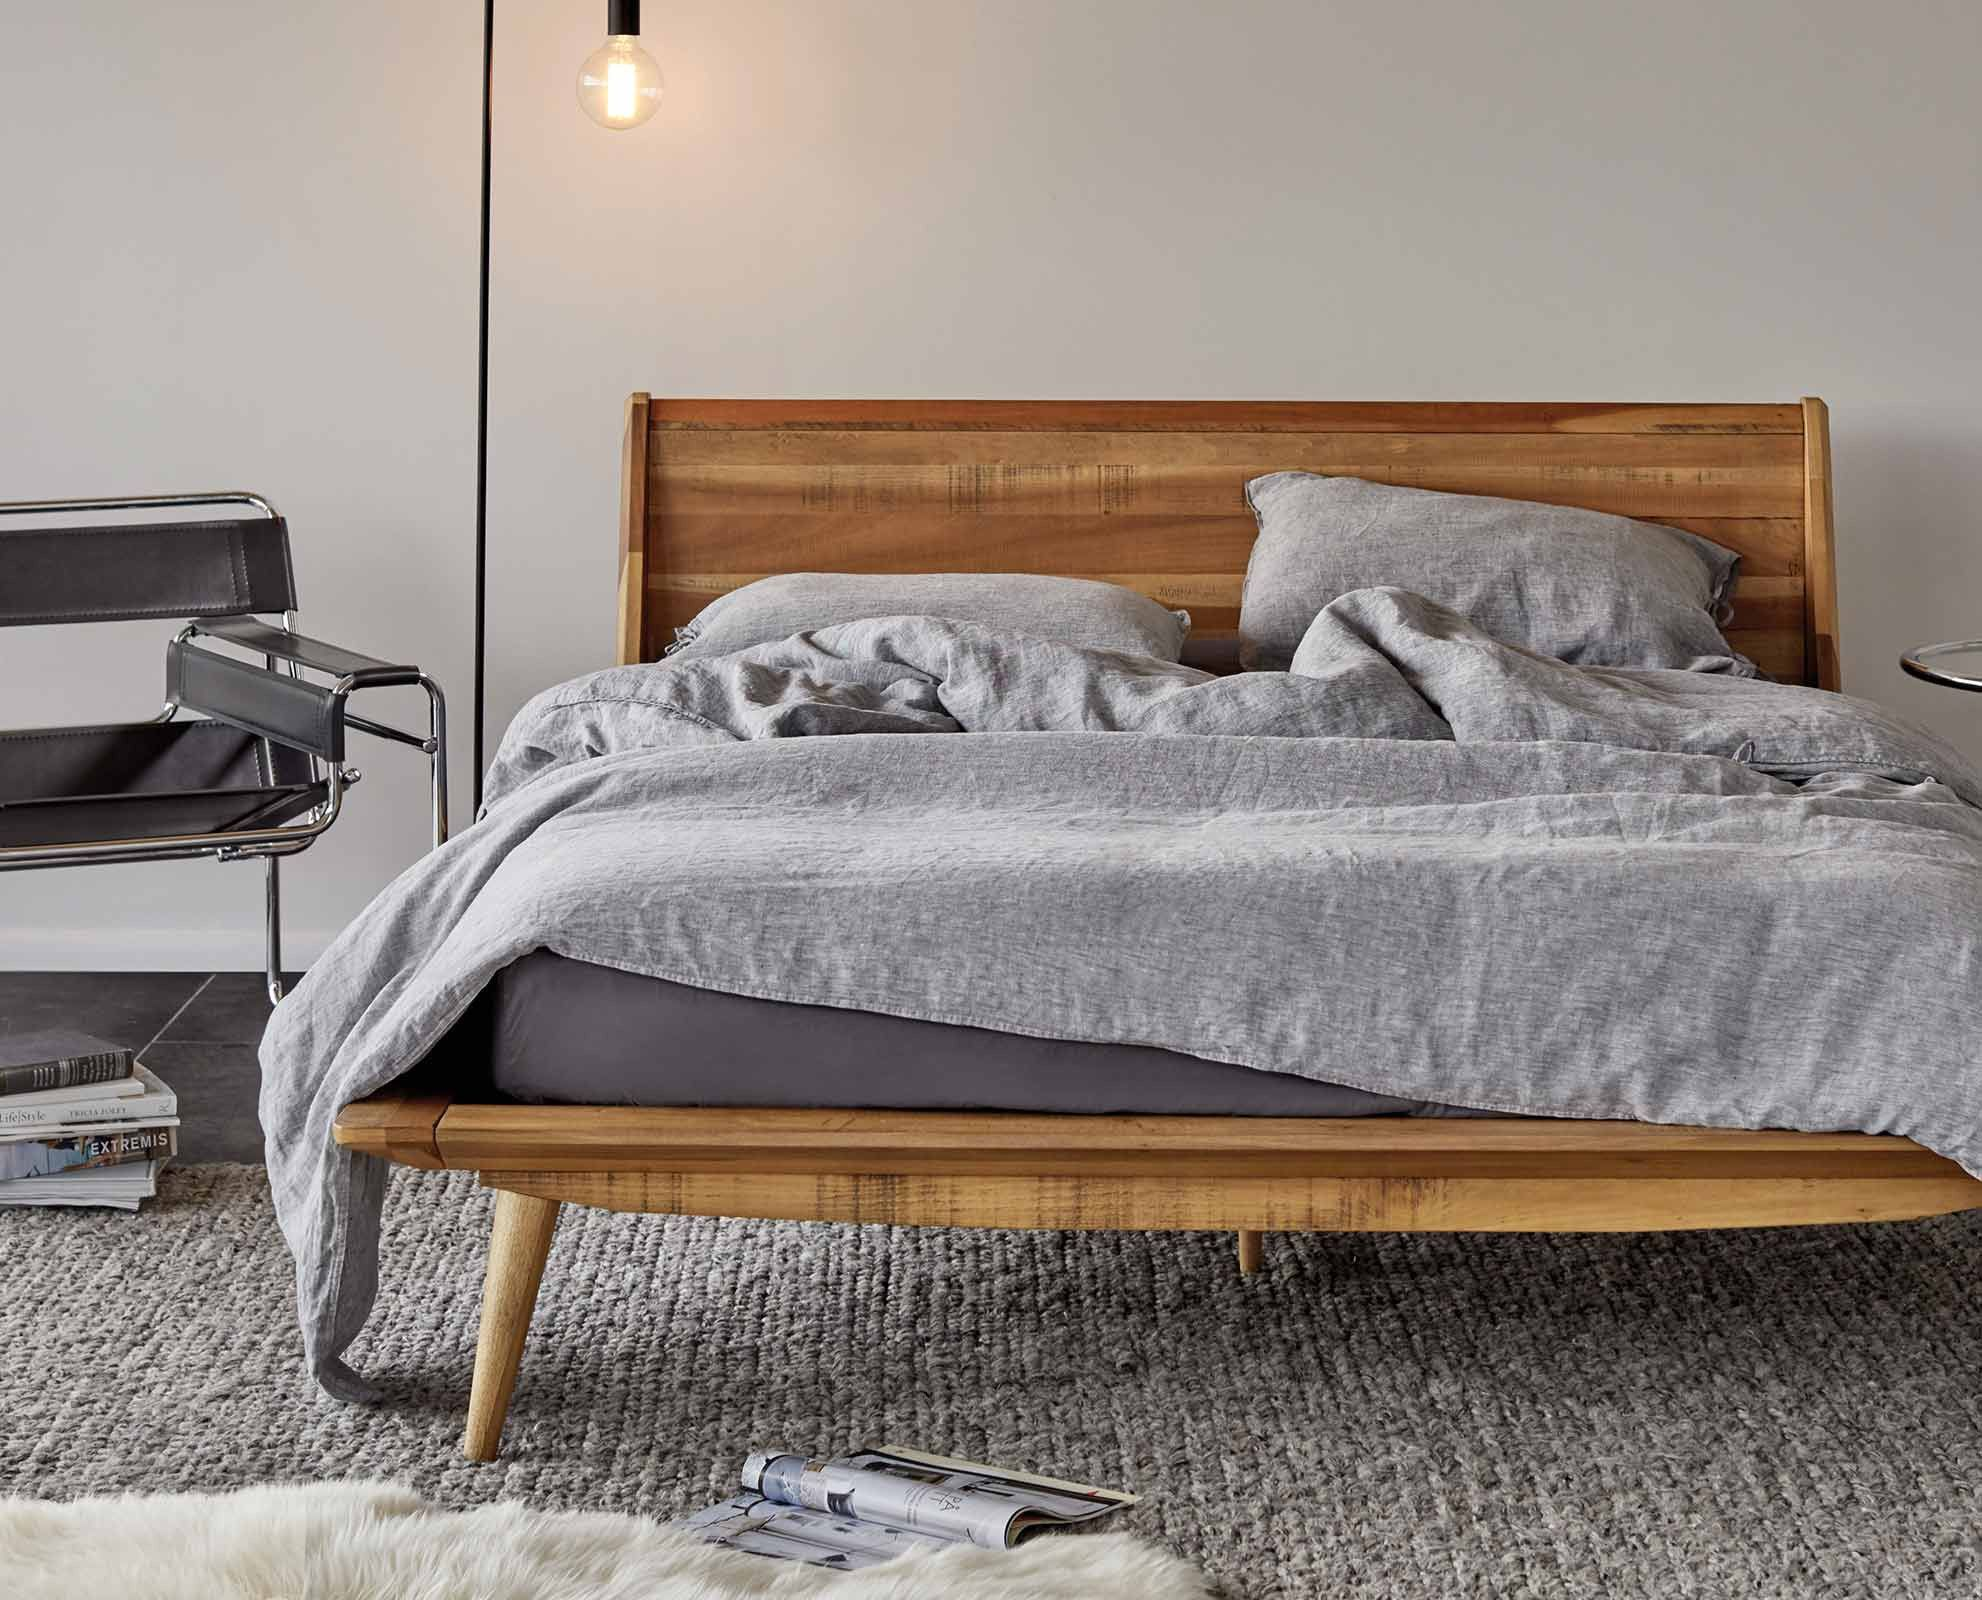 Bolig Bed Modern Apartment Decor Scandinavian Design Bedroom Bedroom Interior